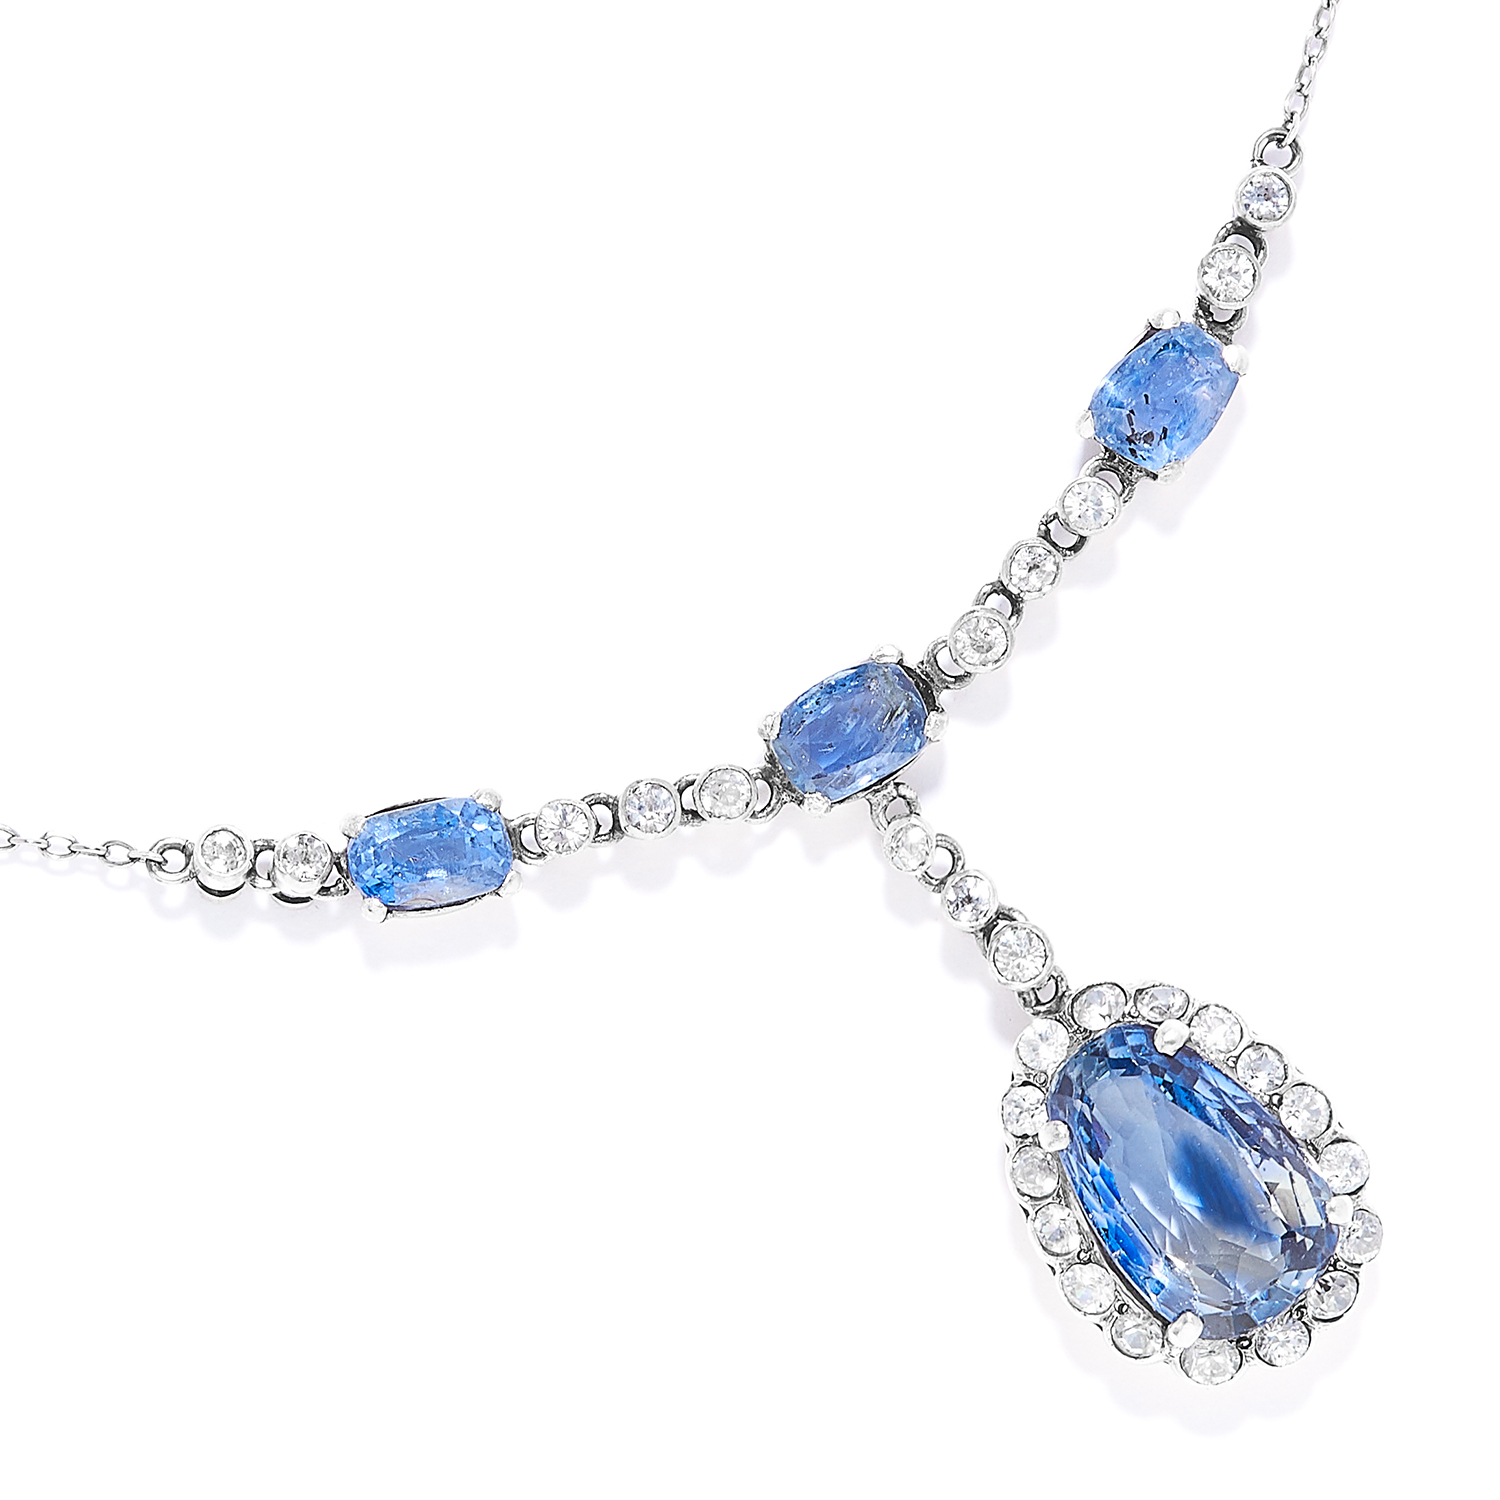 Los 25 - 9.30 CARAT NATURAL BLUE SAPPHIRE AND WHITE SAPPHIRE NECKLACE in white gold or platinum, set with